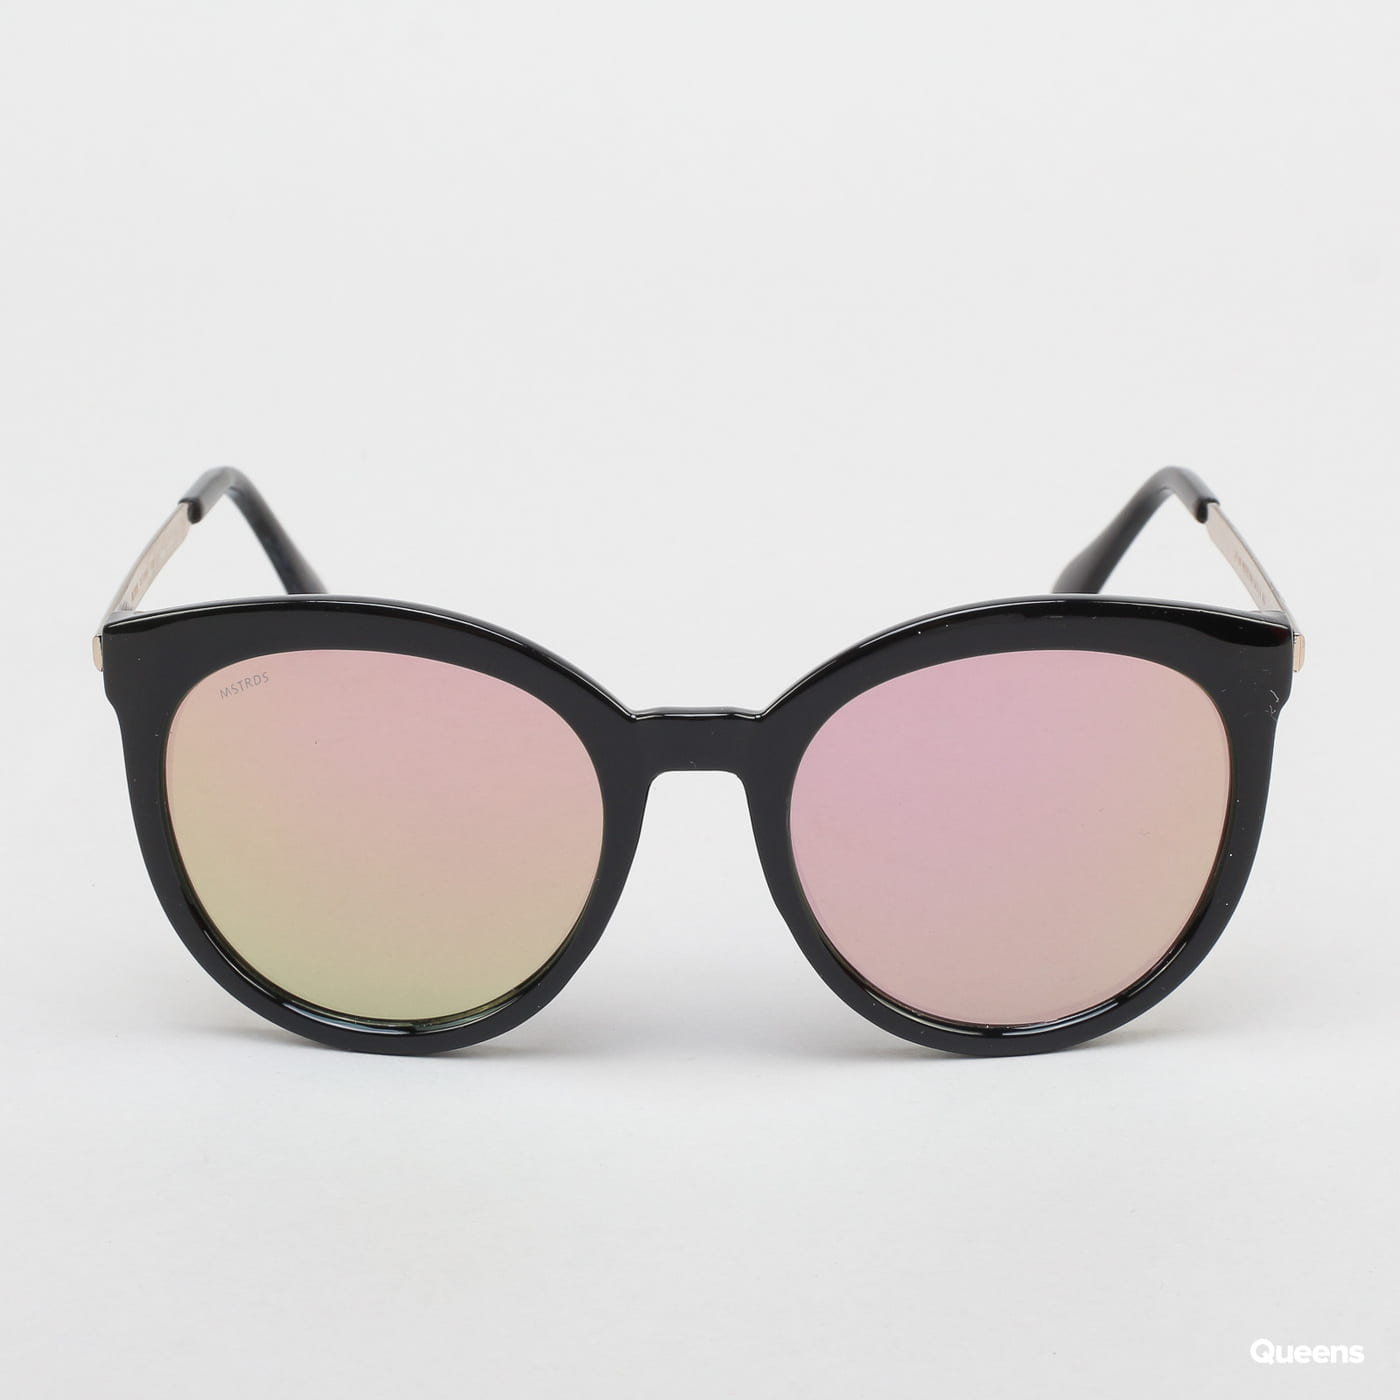 MD Sunglasses October schwarz / pink